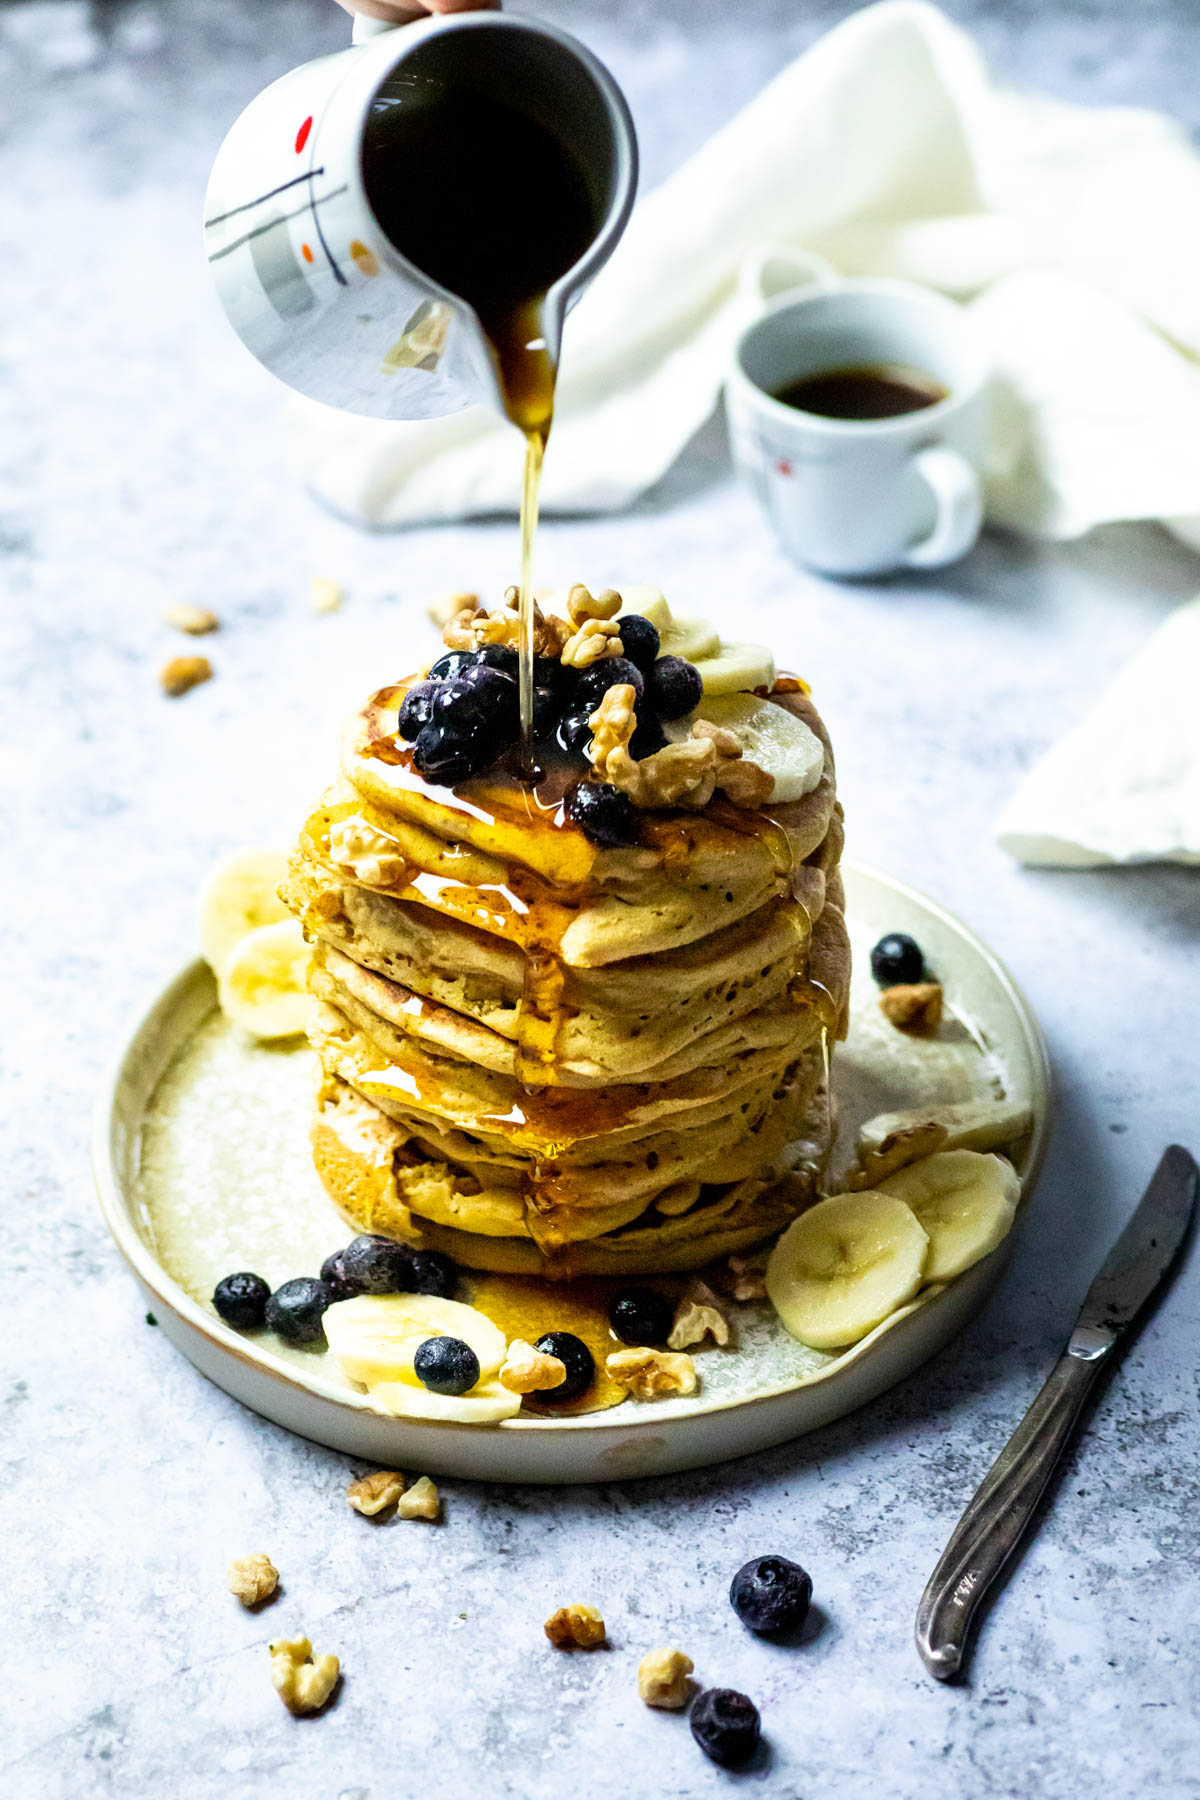 Stack of vegan pancakes on a plate with blueberries, bananas and walnuts. And a cup of coffee in the background. Pouring Maple syrup over the pancake stack.